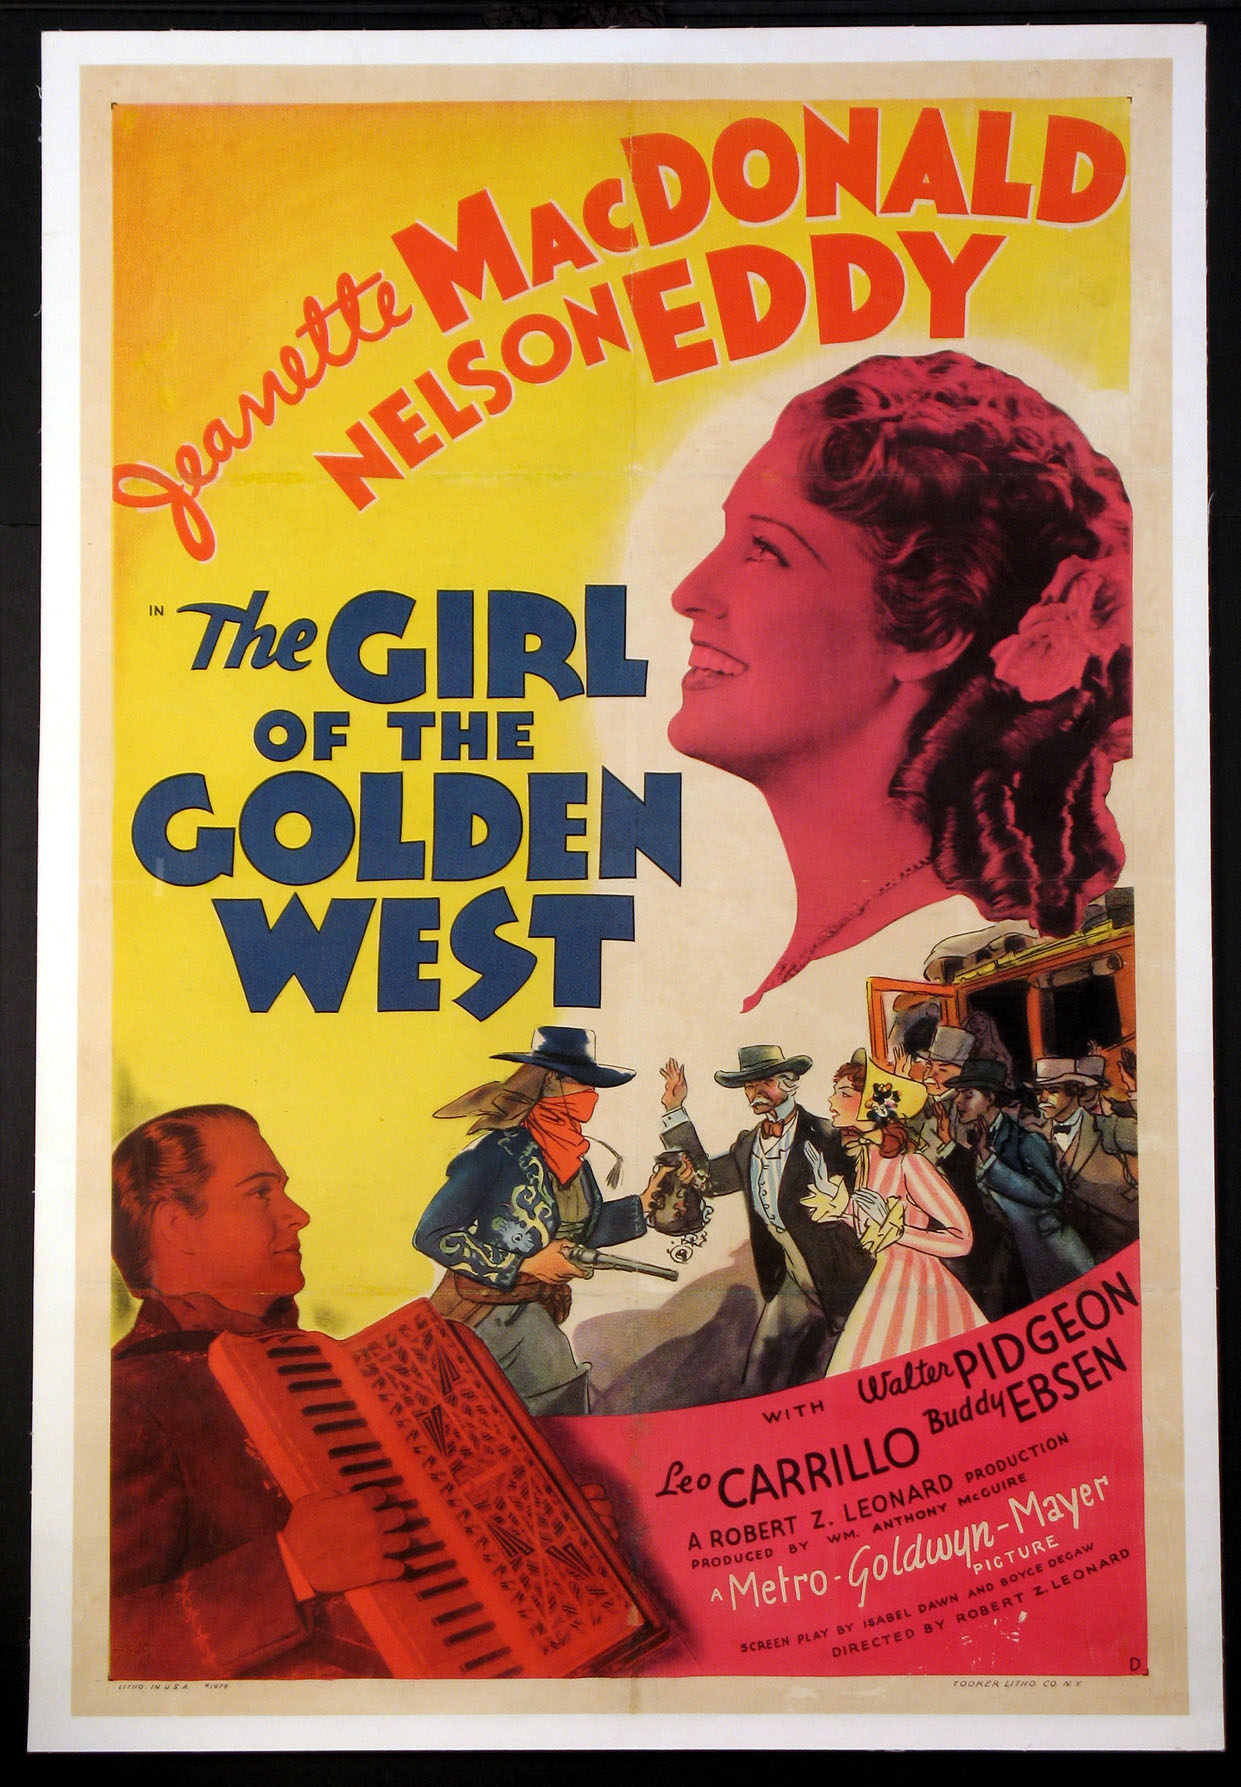 GIRL OF THE GOLDEN WEST, THE @ FilmPosters.com